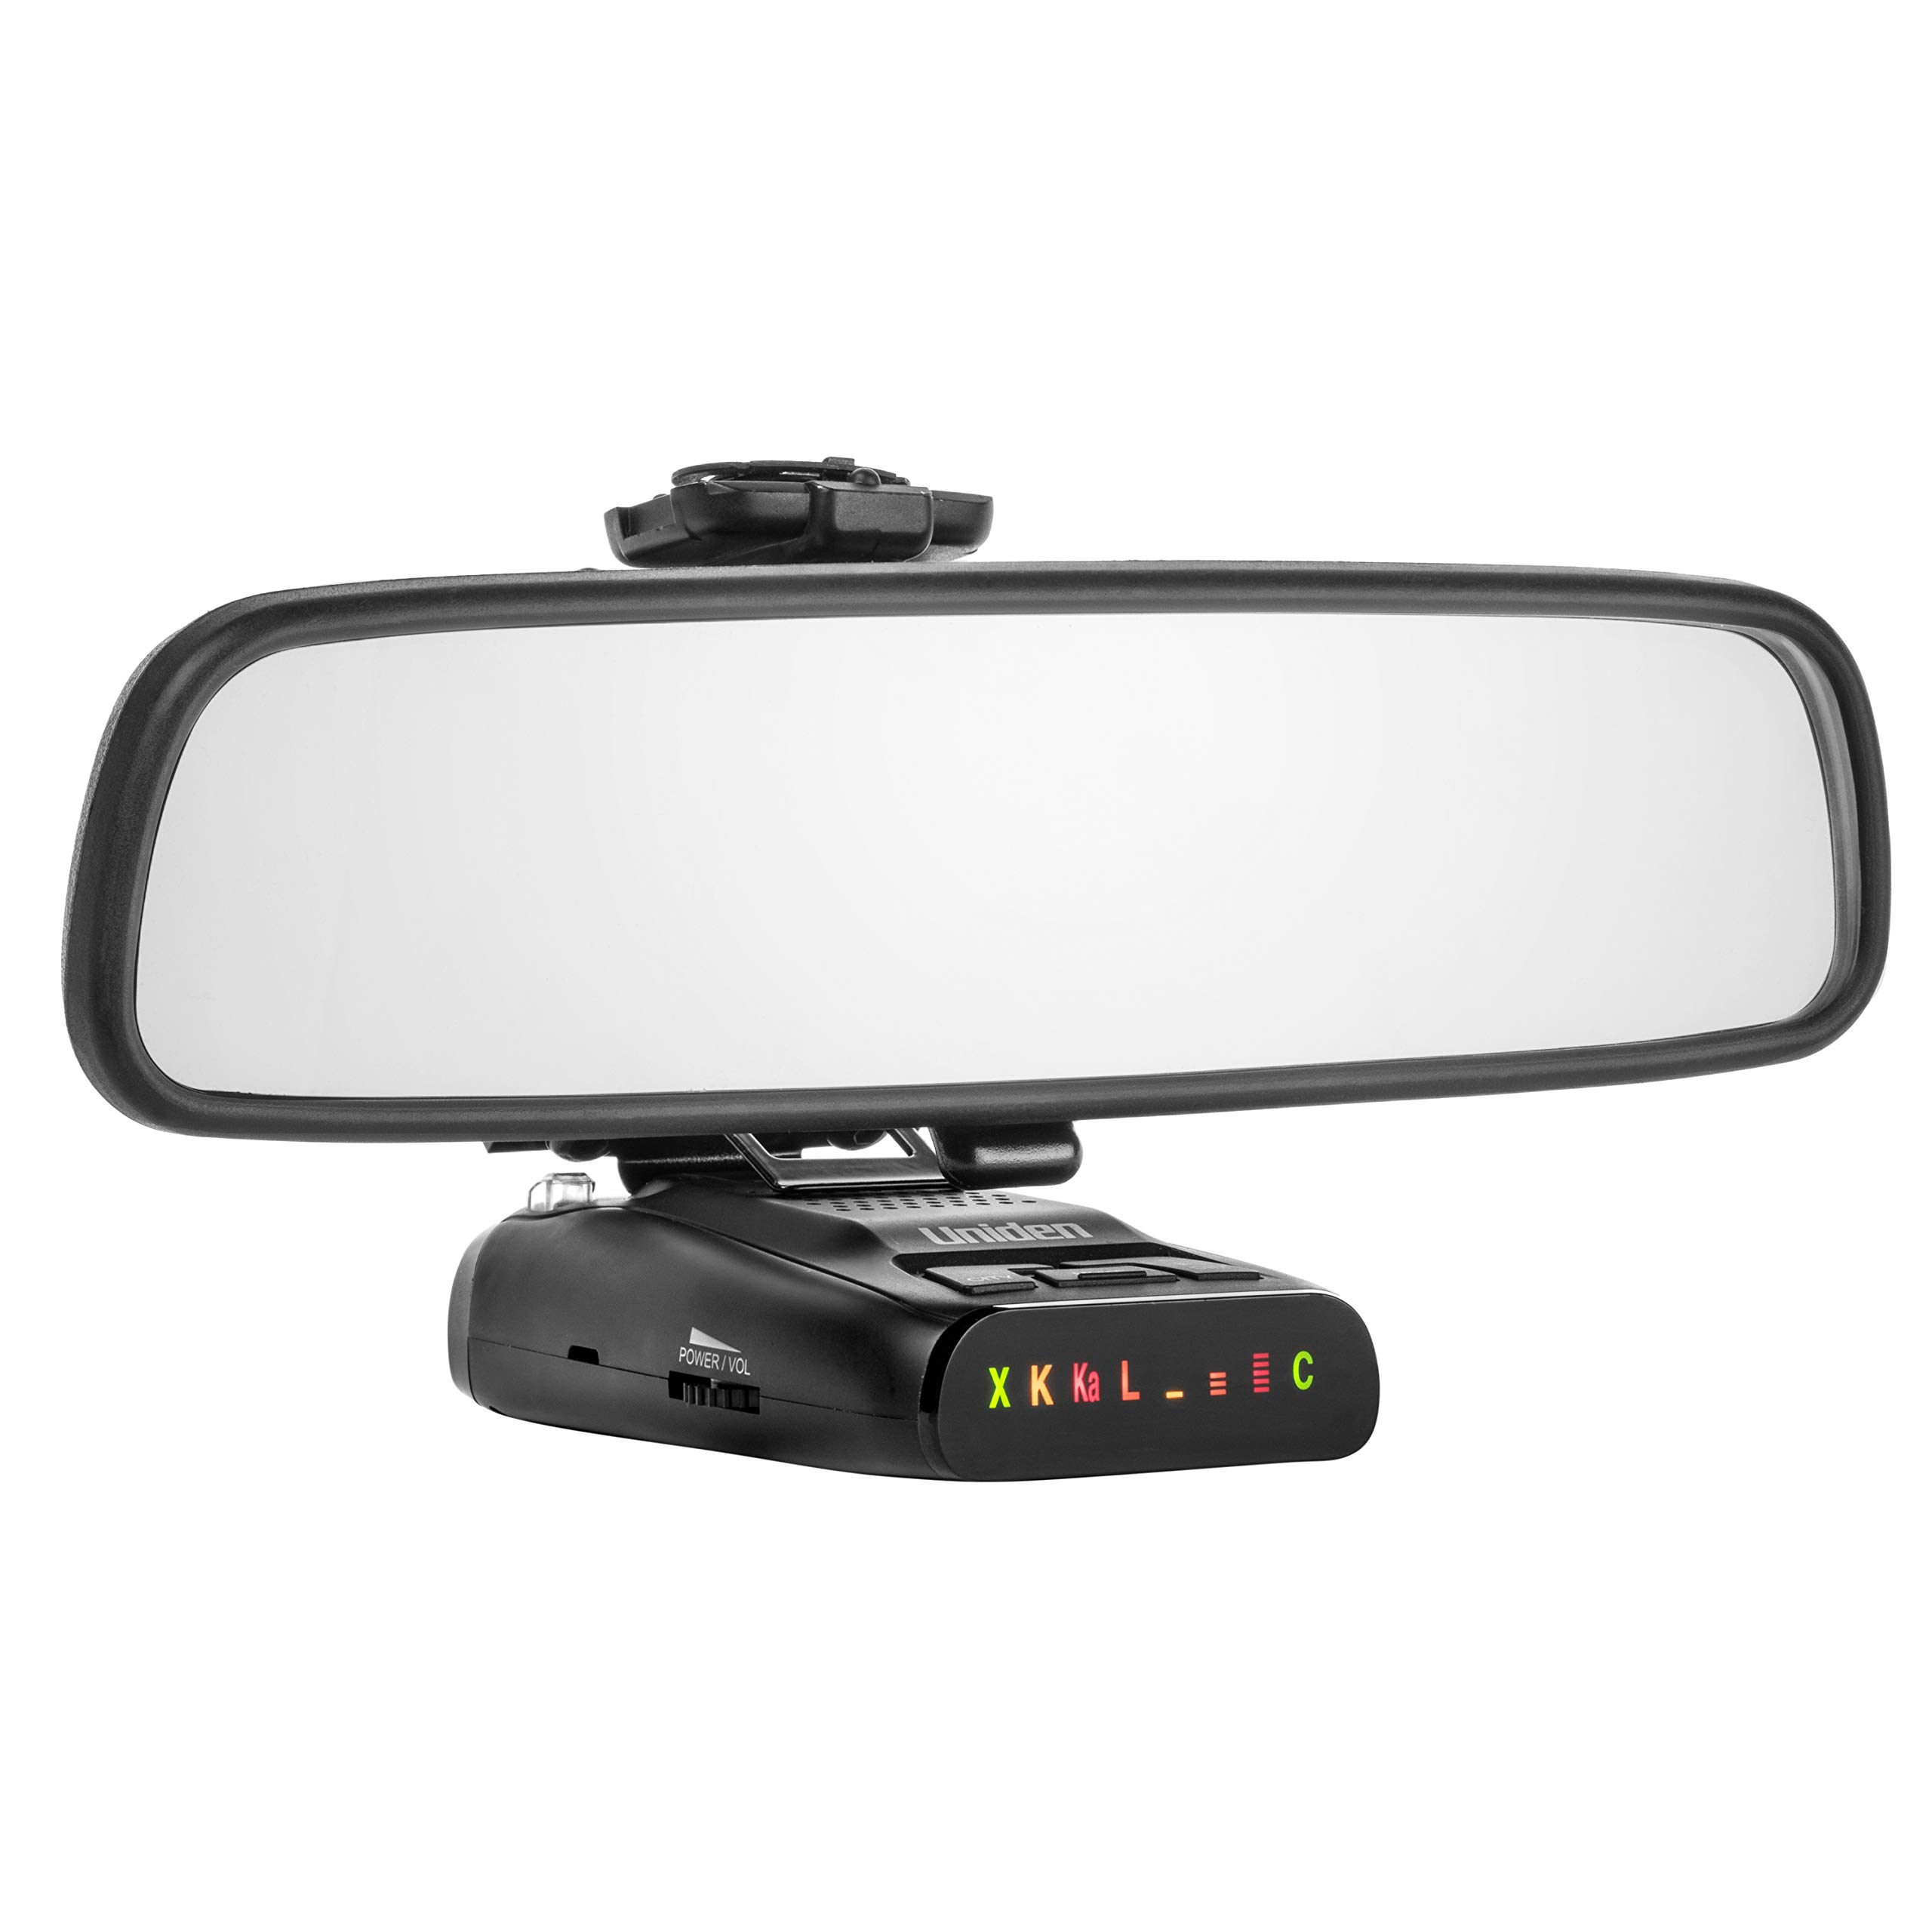 Radar Mount Mirror Mount Radar Detector Bracket for Uniden DFR Series Detectors (3001009u) by Radar Mount